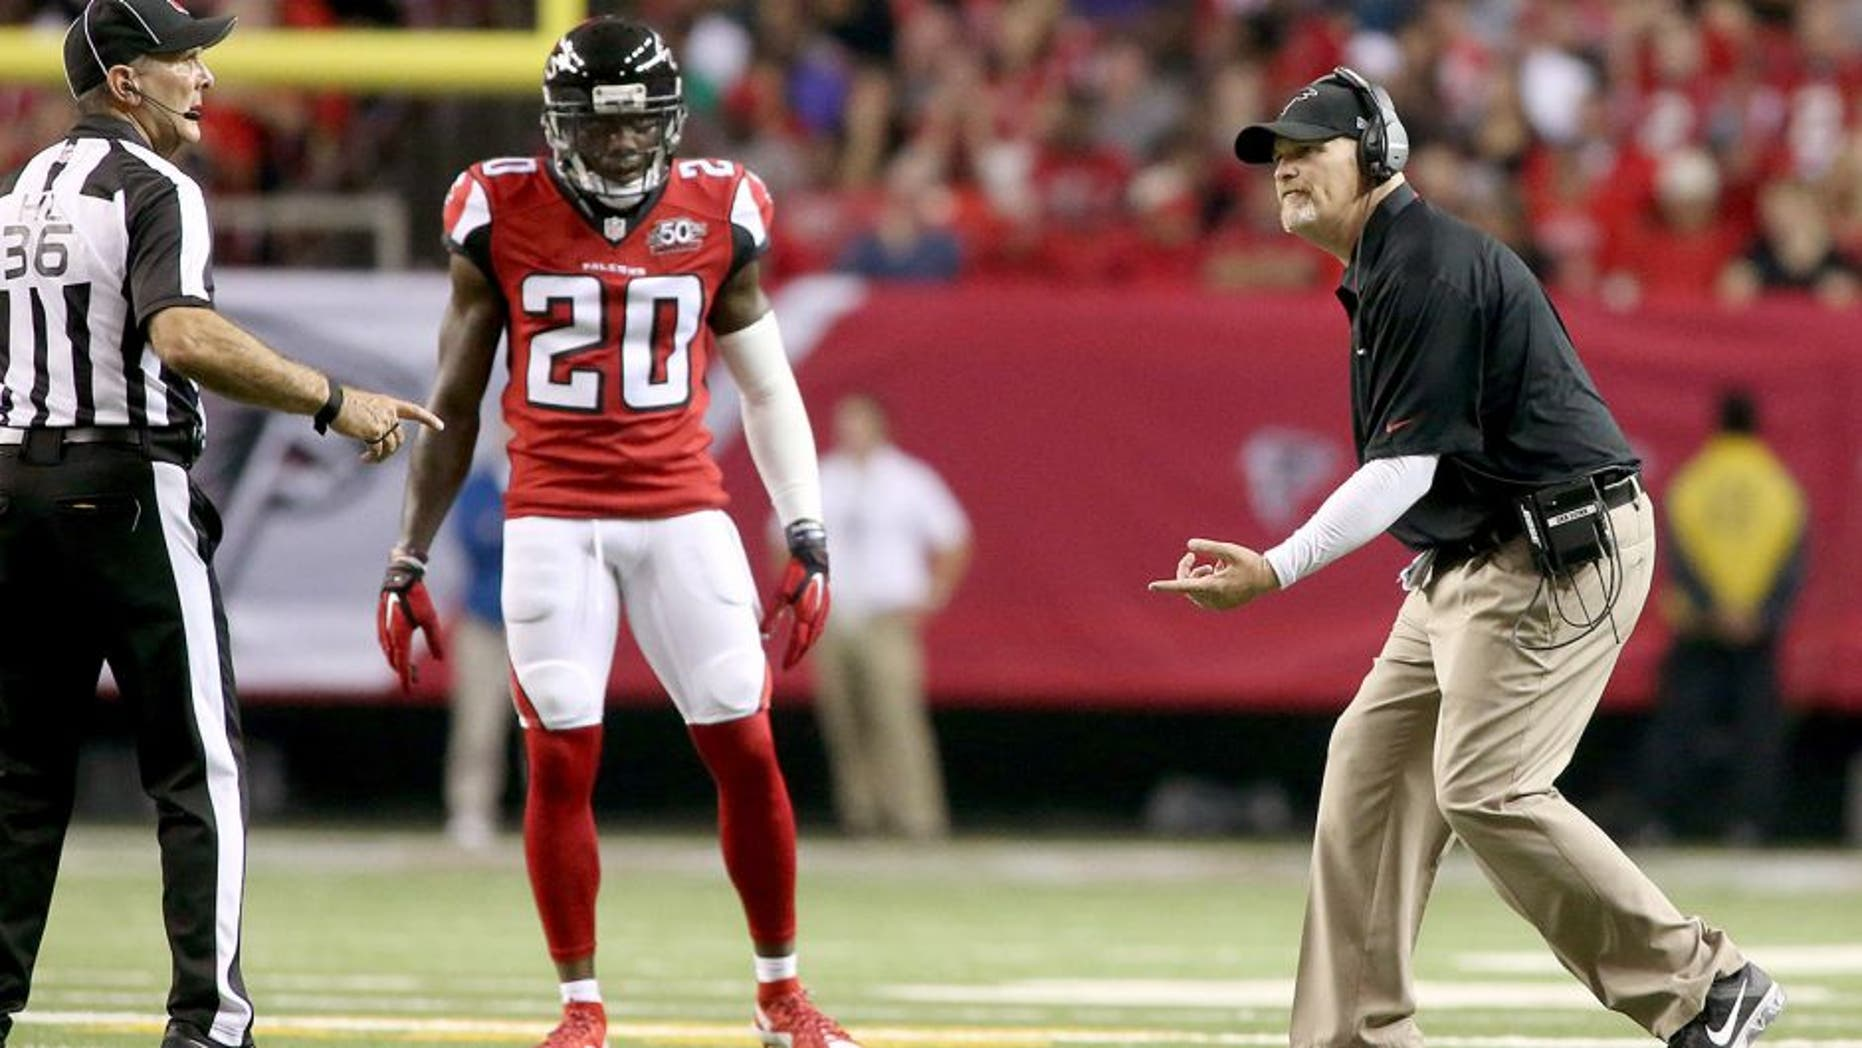 Nov 1, 2015; Atlanta, GA, USA; Atlanta Falcons head coach Dan Quinn argues a call with official Tony Veteri (36) as defensive back Phillip Adams (20) watches in the fourth quarter of their game against the Tampa Bay Buccaneers at the Georgia Dome. The Buccaneers won 23-20 in overtime. Mandatory Credit: Jason Getz-USA TODAY Sports